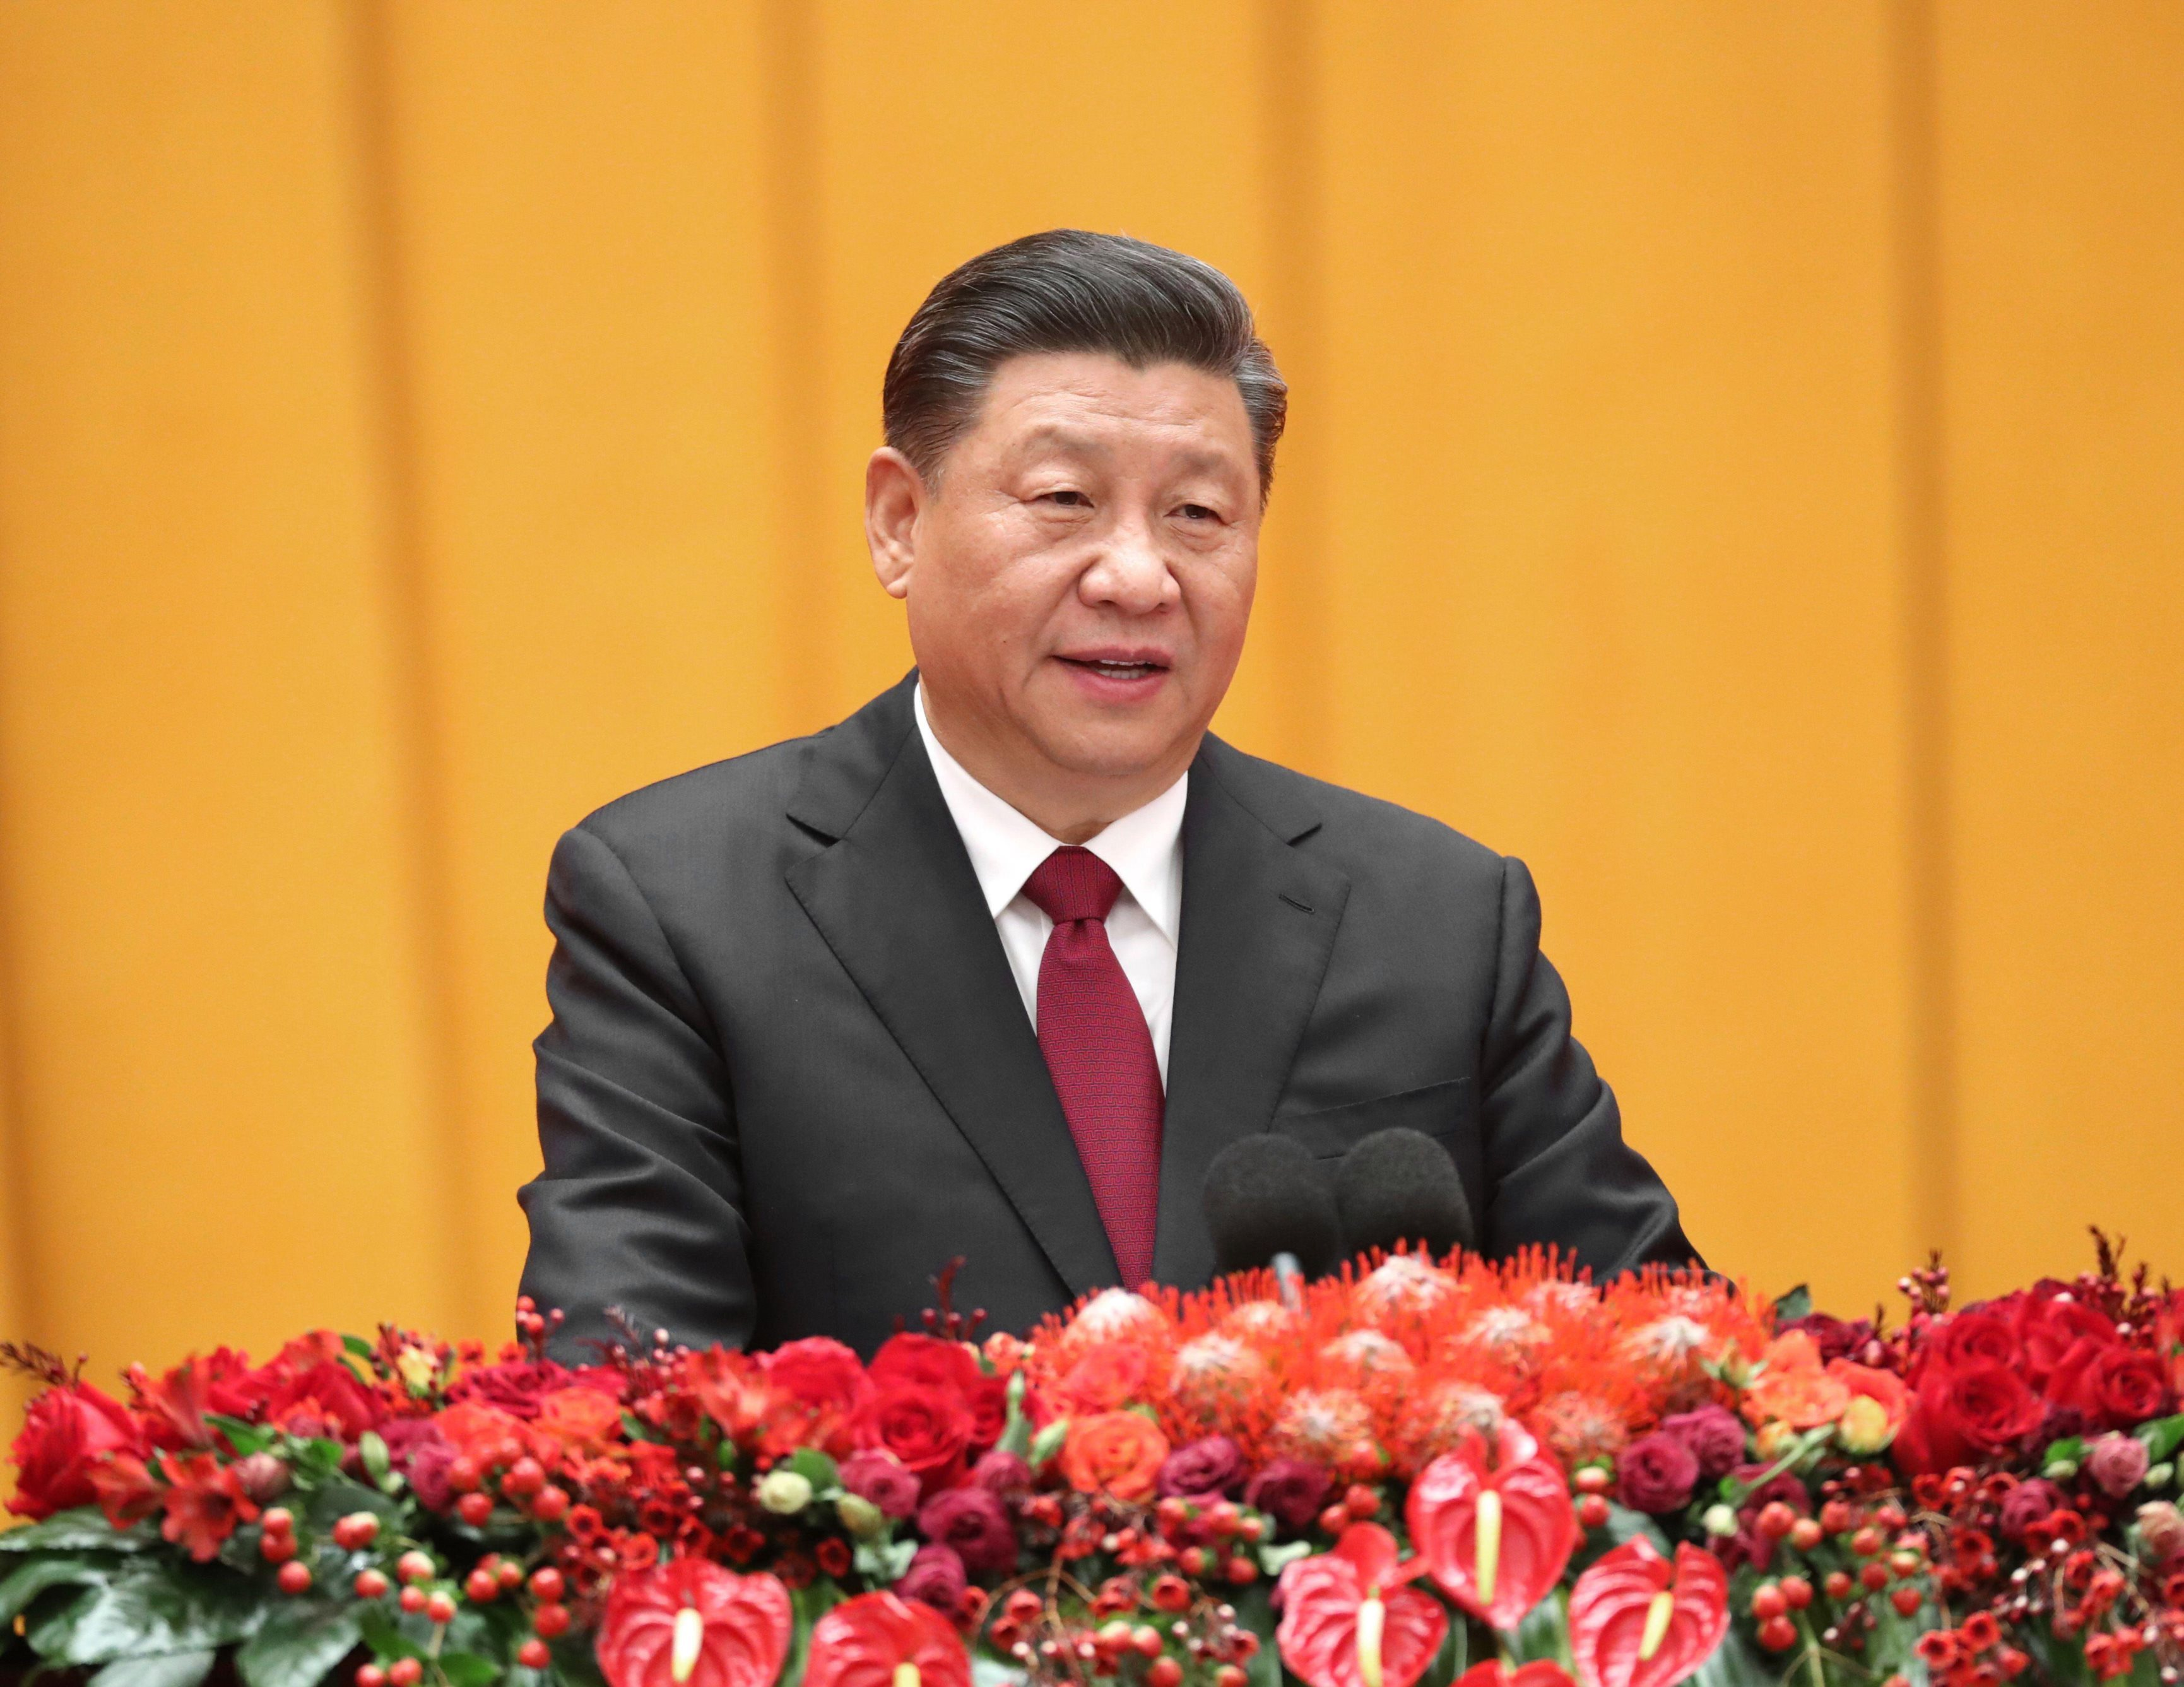 Chinese president Xi Jinping branded coronavirus the 'devil' at a press conference today